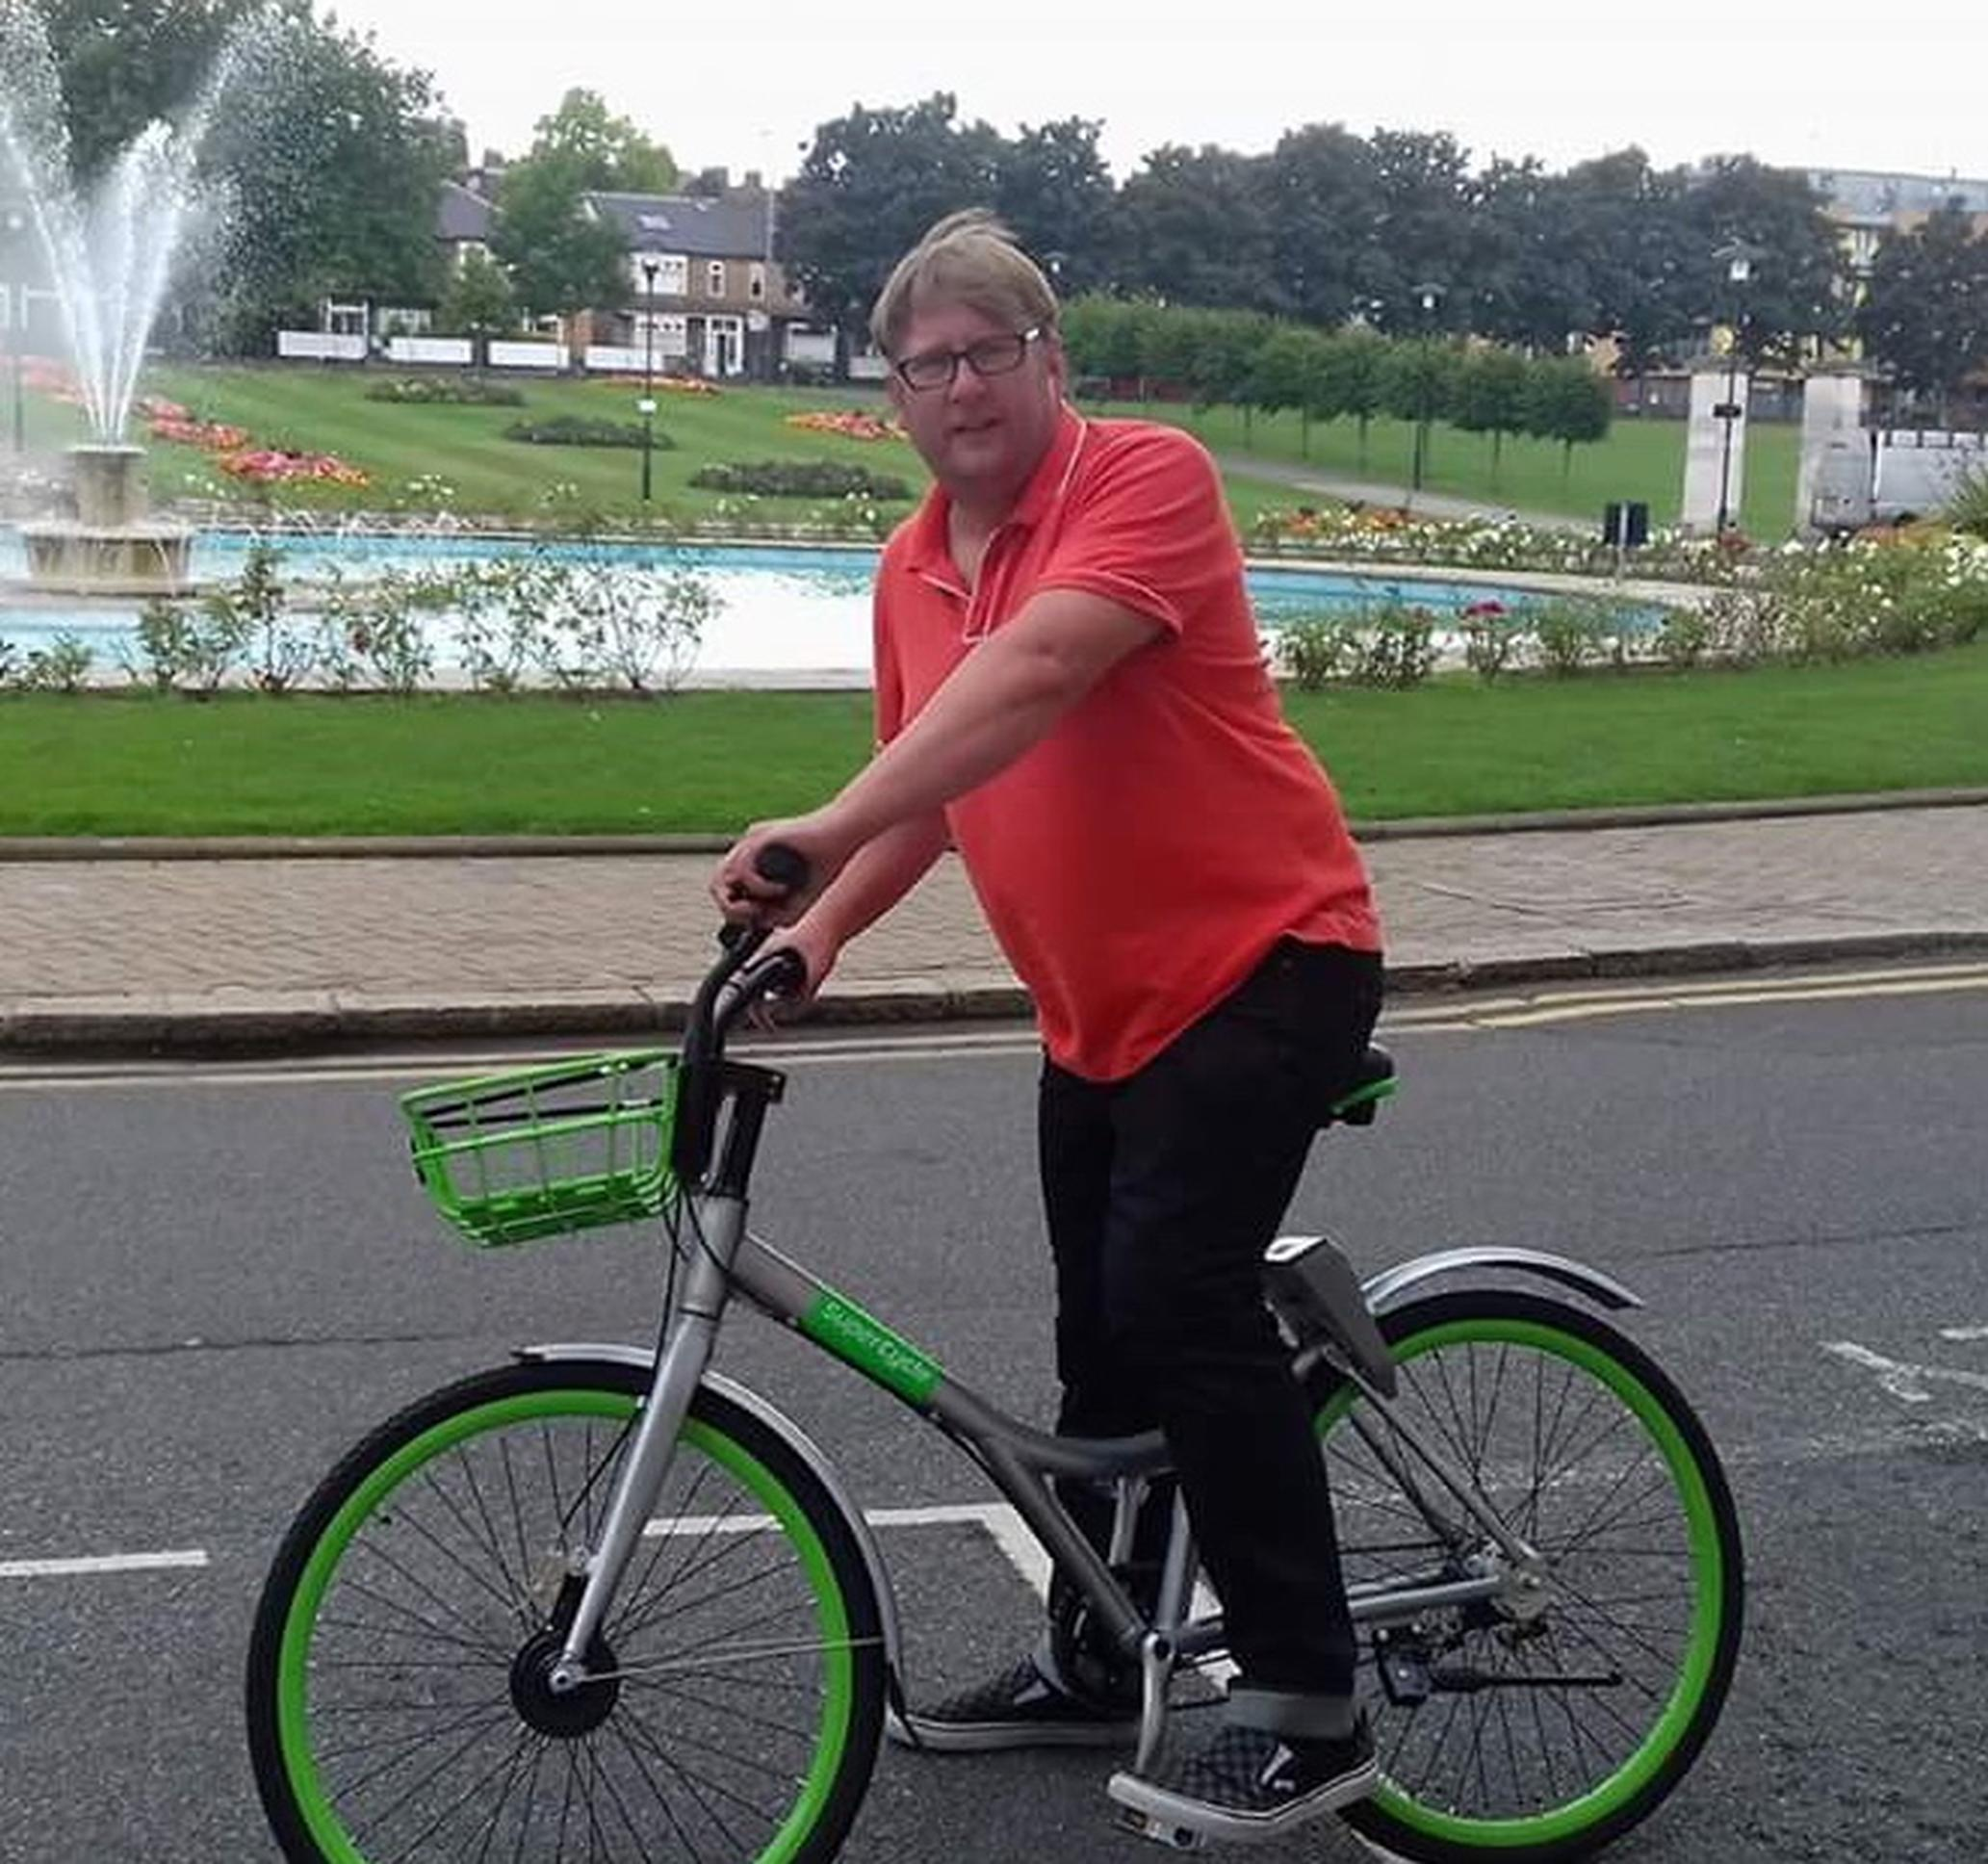 Waltham Forest`s member for the environment Clyde Loakes tries out an Urbo bike